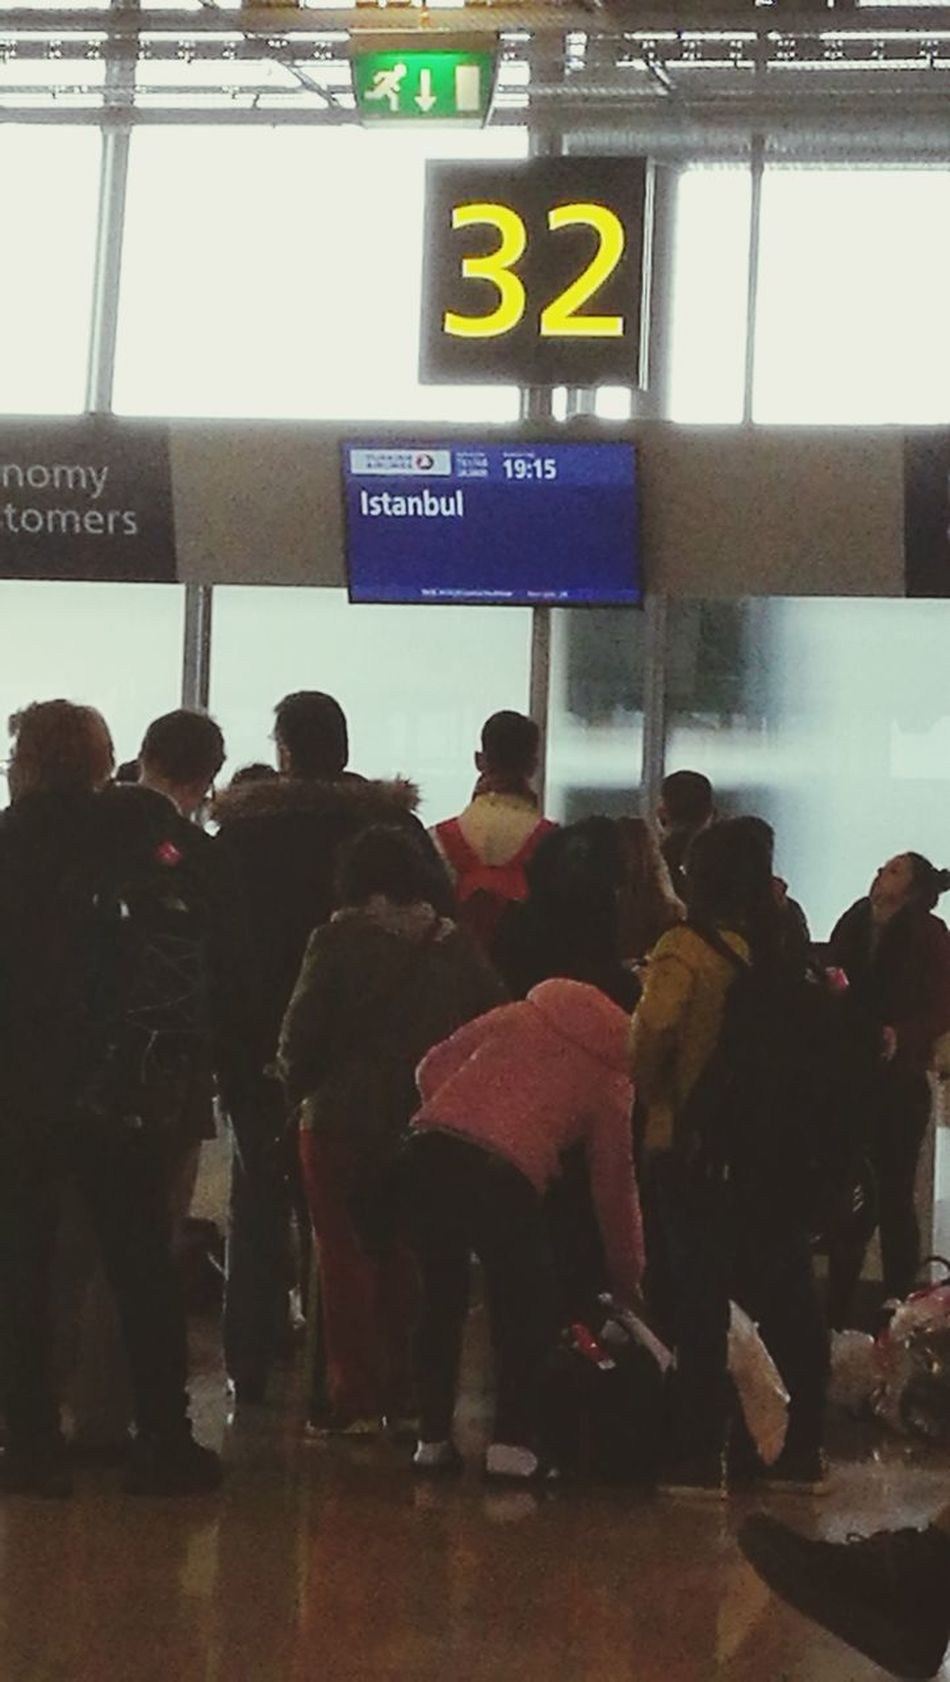 People Large Group Of People Crowd Adult Indoors  Adults Only Day Aeroport ✈ Helsinki Vantaa Aéroport Finland♥ Finland_photolovers Finlandia Finland Finlandlovers Finlande Helsinki, Finland.